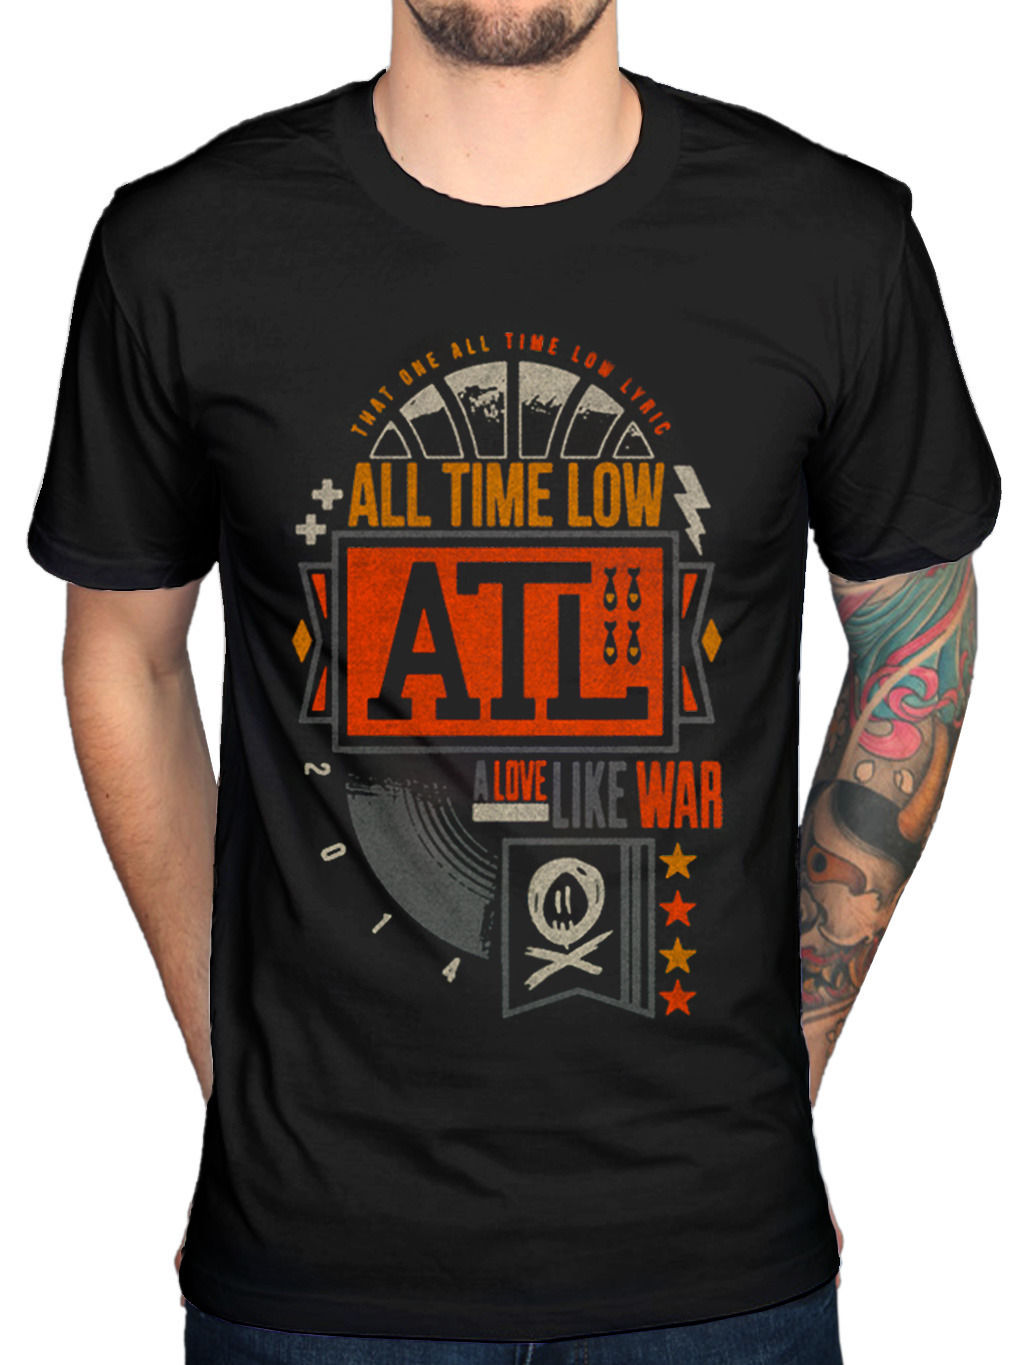 Mens All Time Low Volts T-Shirt Future Hearts Dirty Work Dont Panic sf